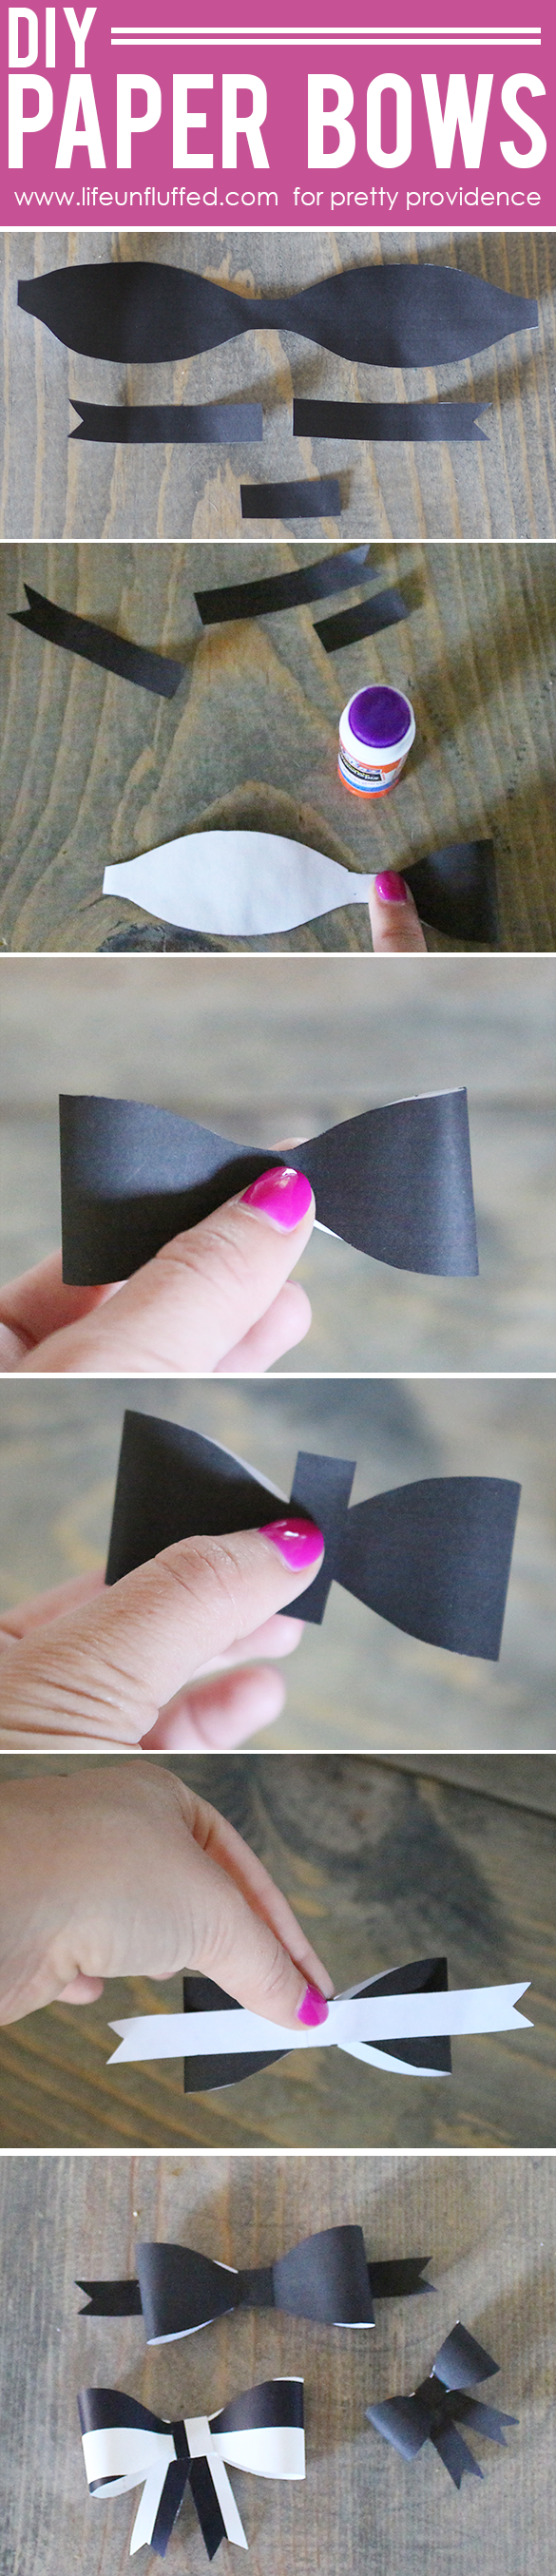 printable gift bows diy ideas pinterest gifts gift bows and bows